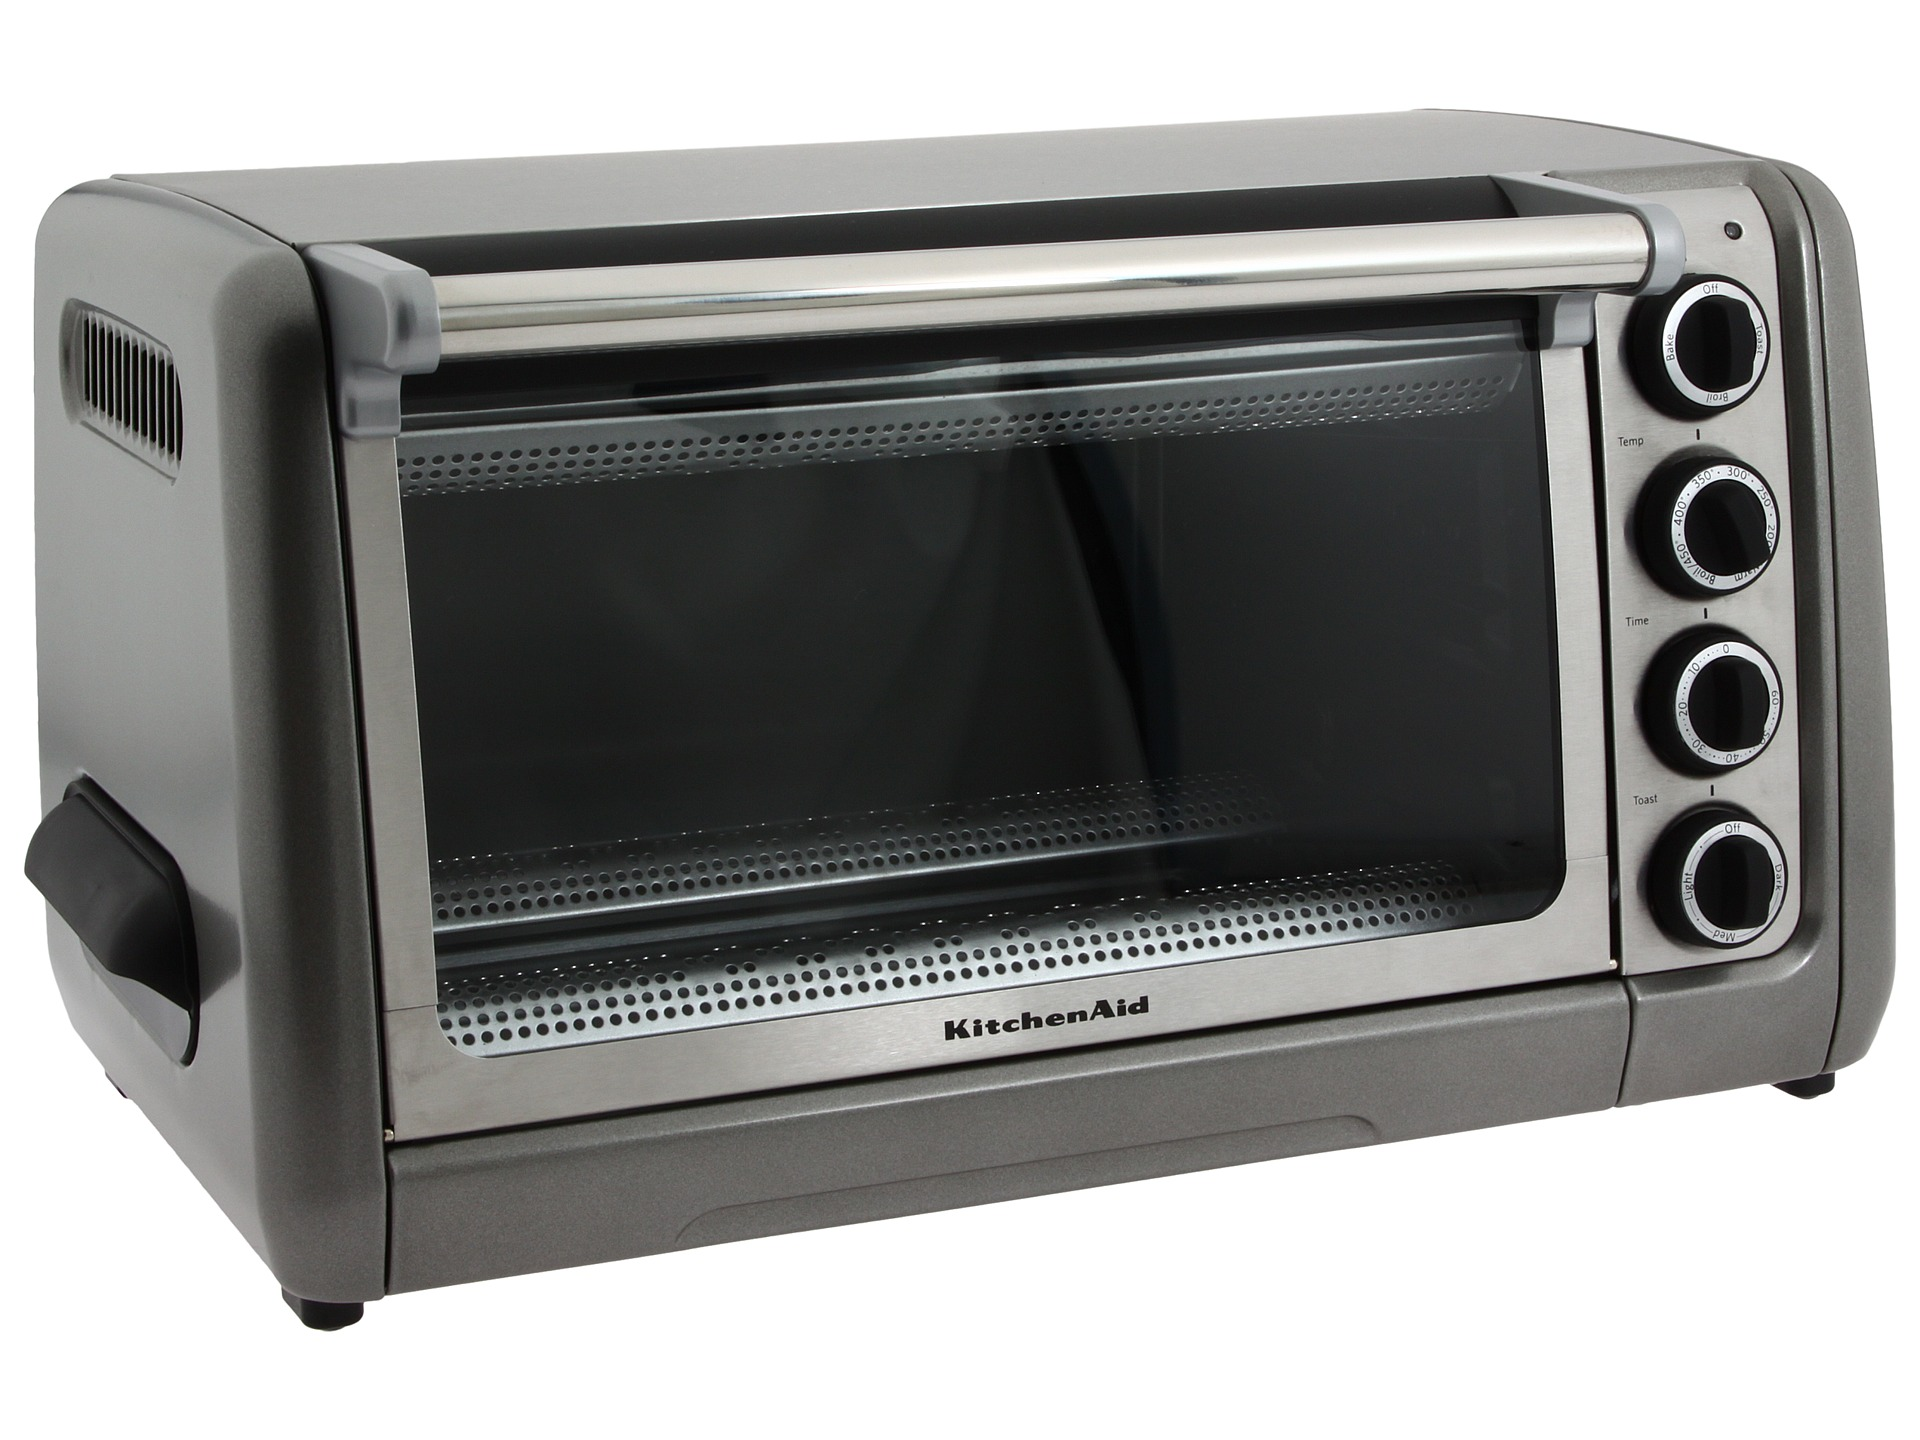 No results for kitchenaid kco111 10 countertop oven - Search Zappos ...